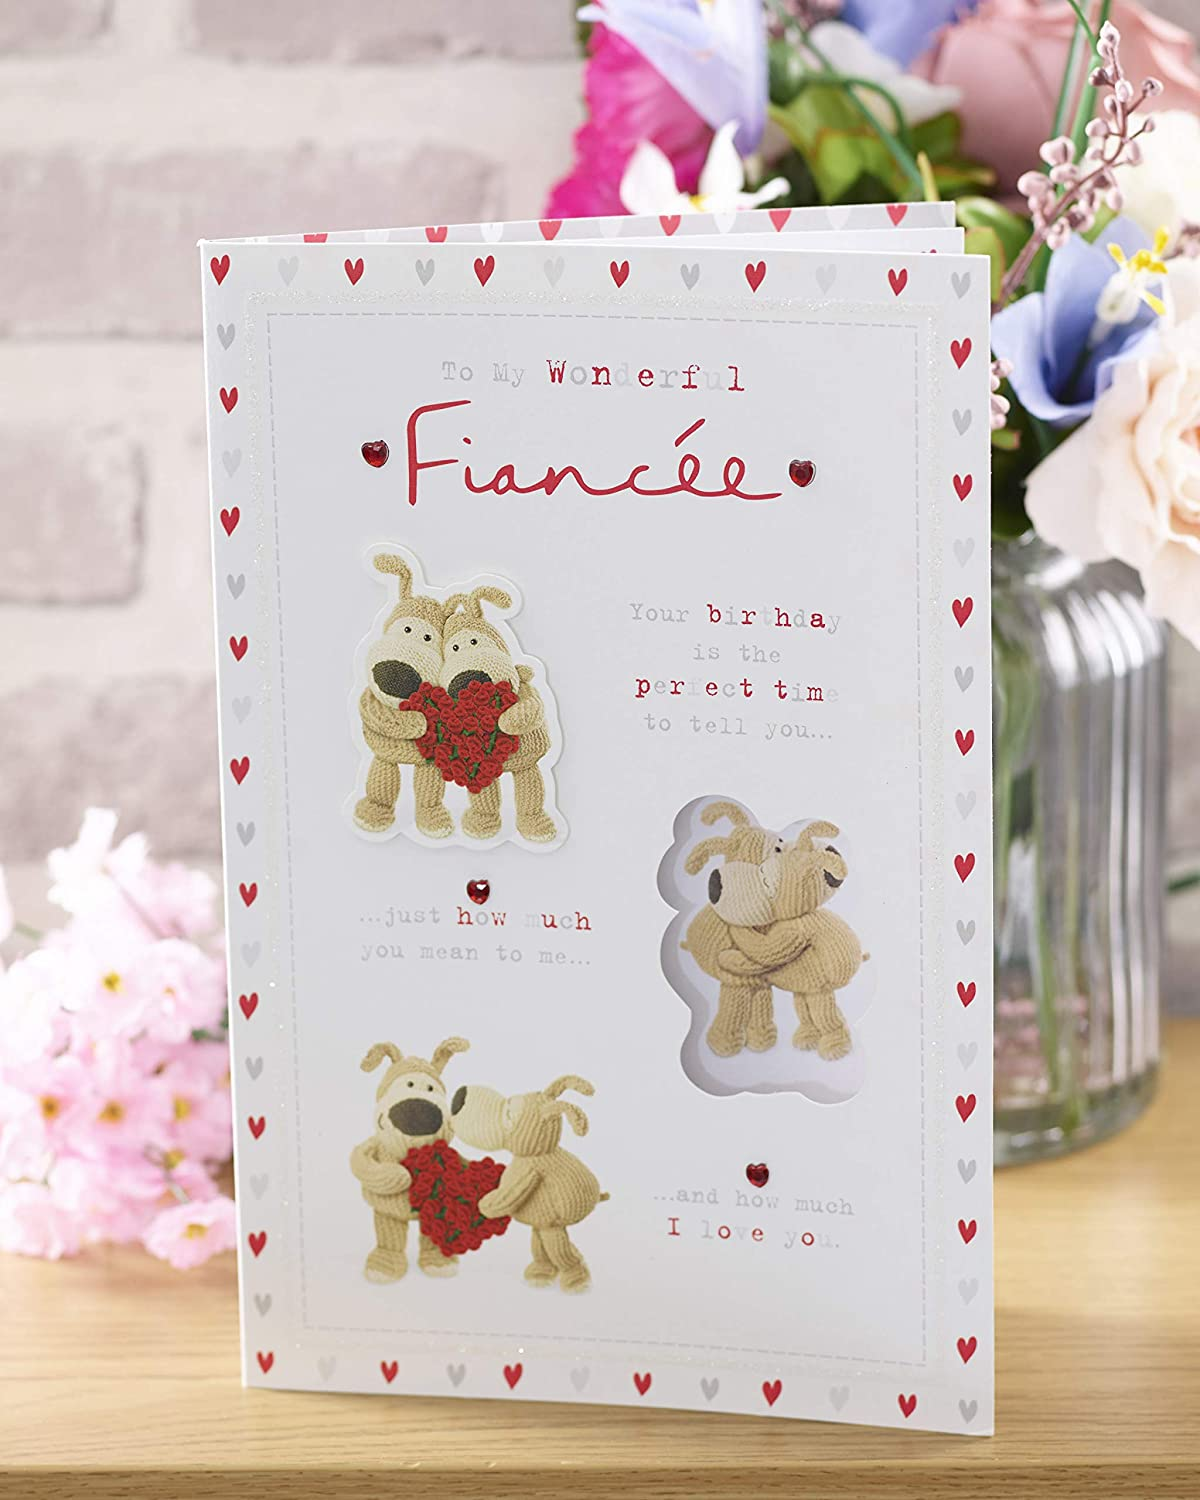 Giftcards for Her Cute Card for Girlfriend Fiance Birthday Gifts Birthday Card for Fiance Fiance Birthday Card Boofle Birthday Card